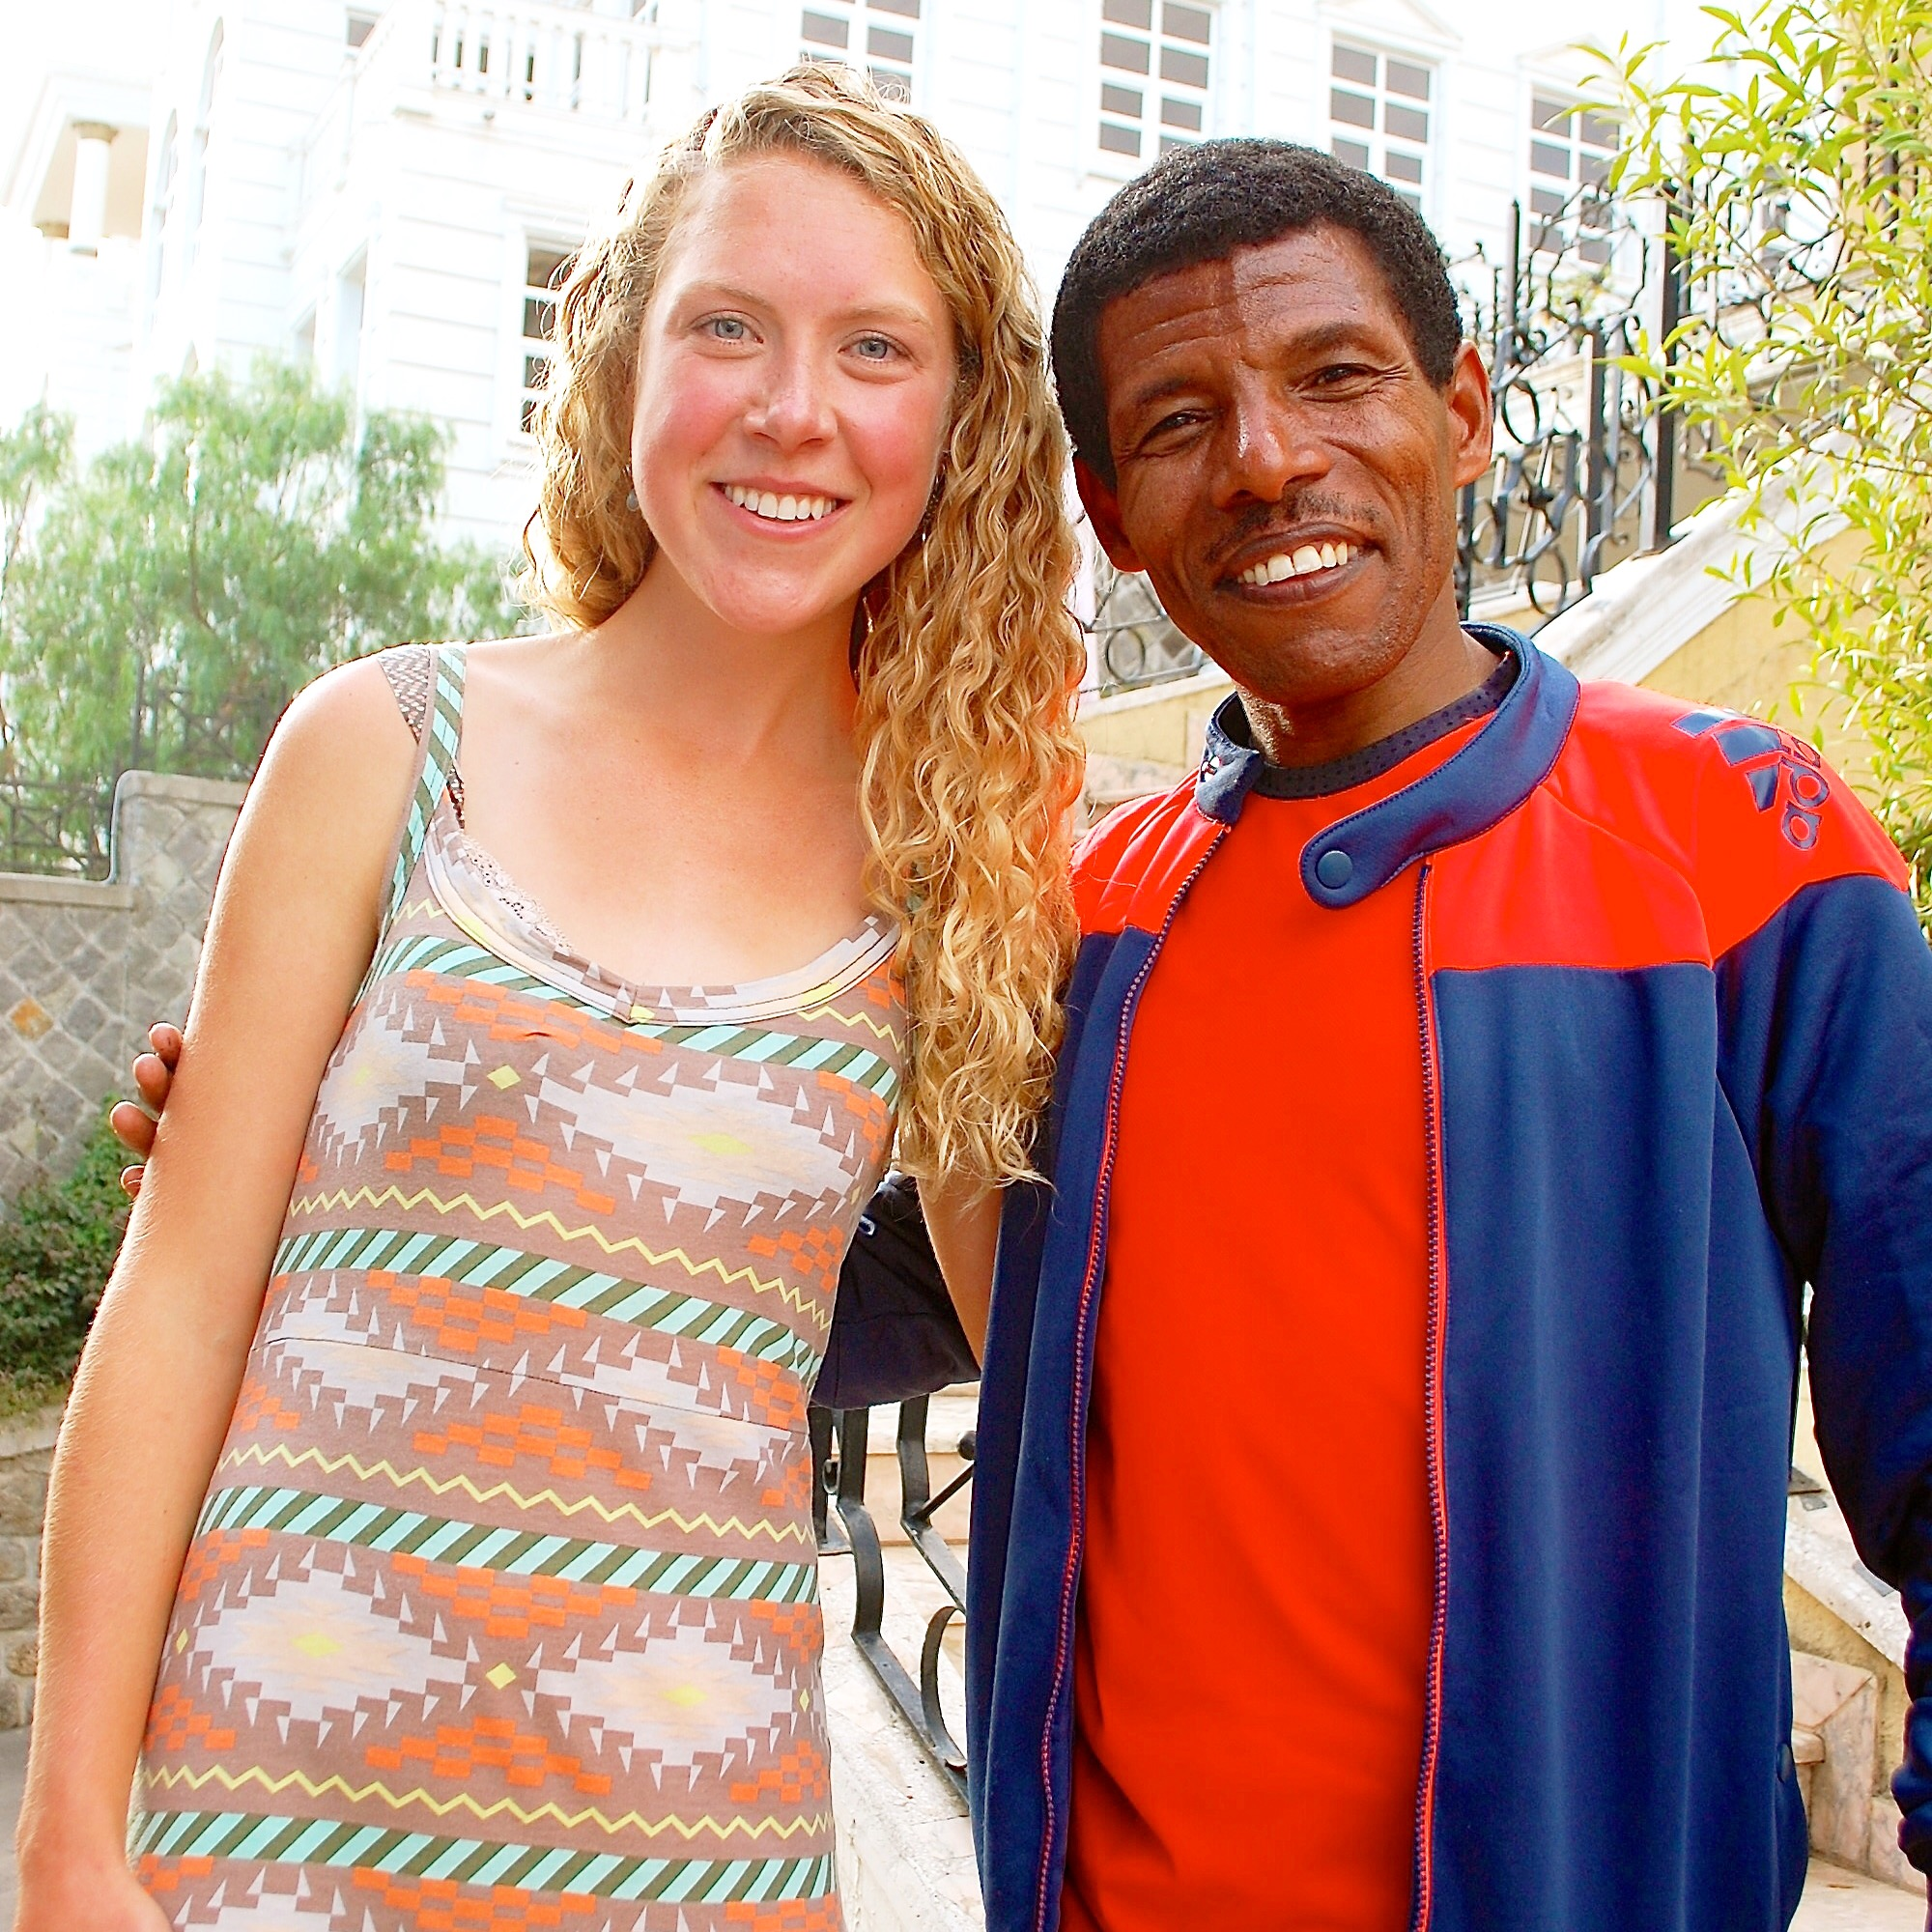 One of the highlights of the day was meeting accomplished runner Haile Gebrselassie